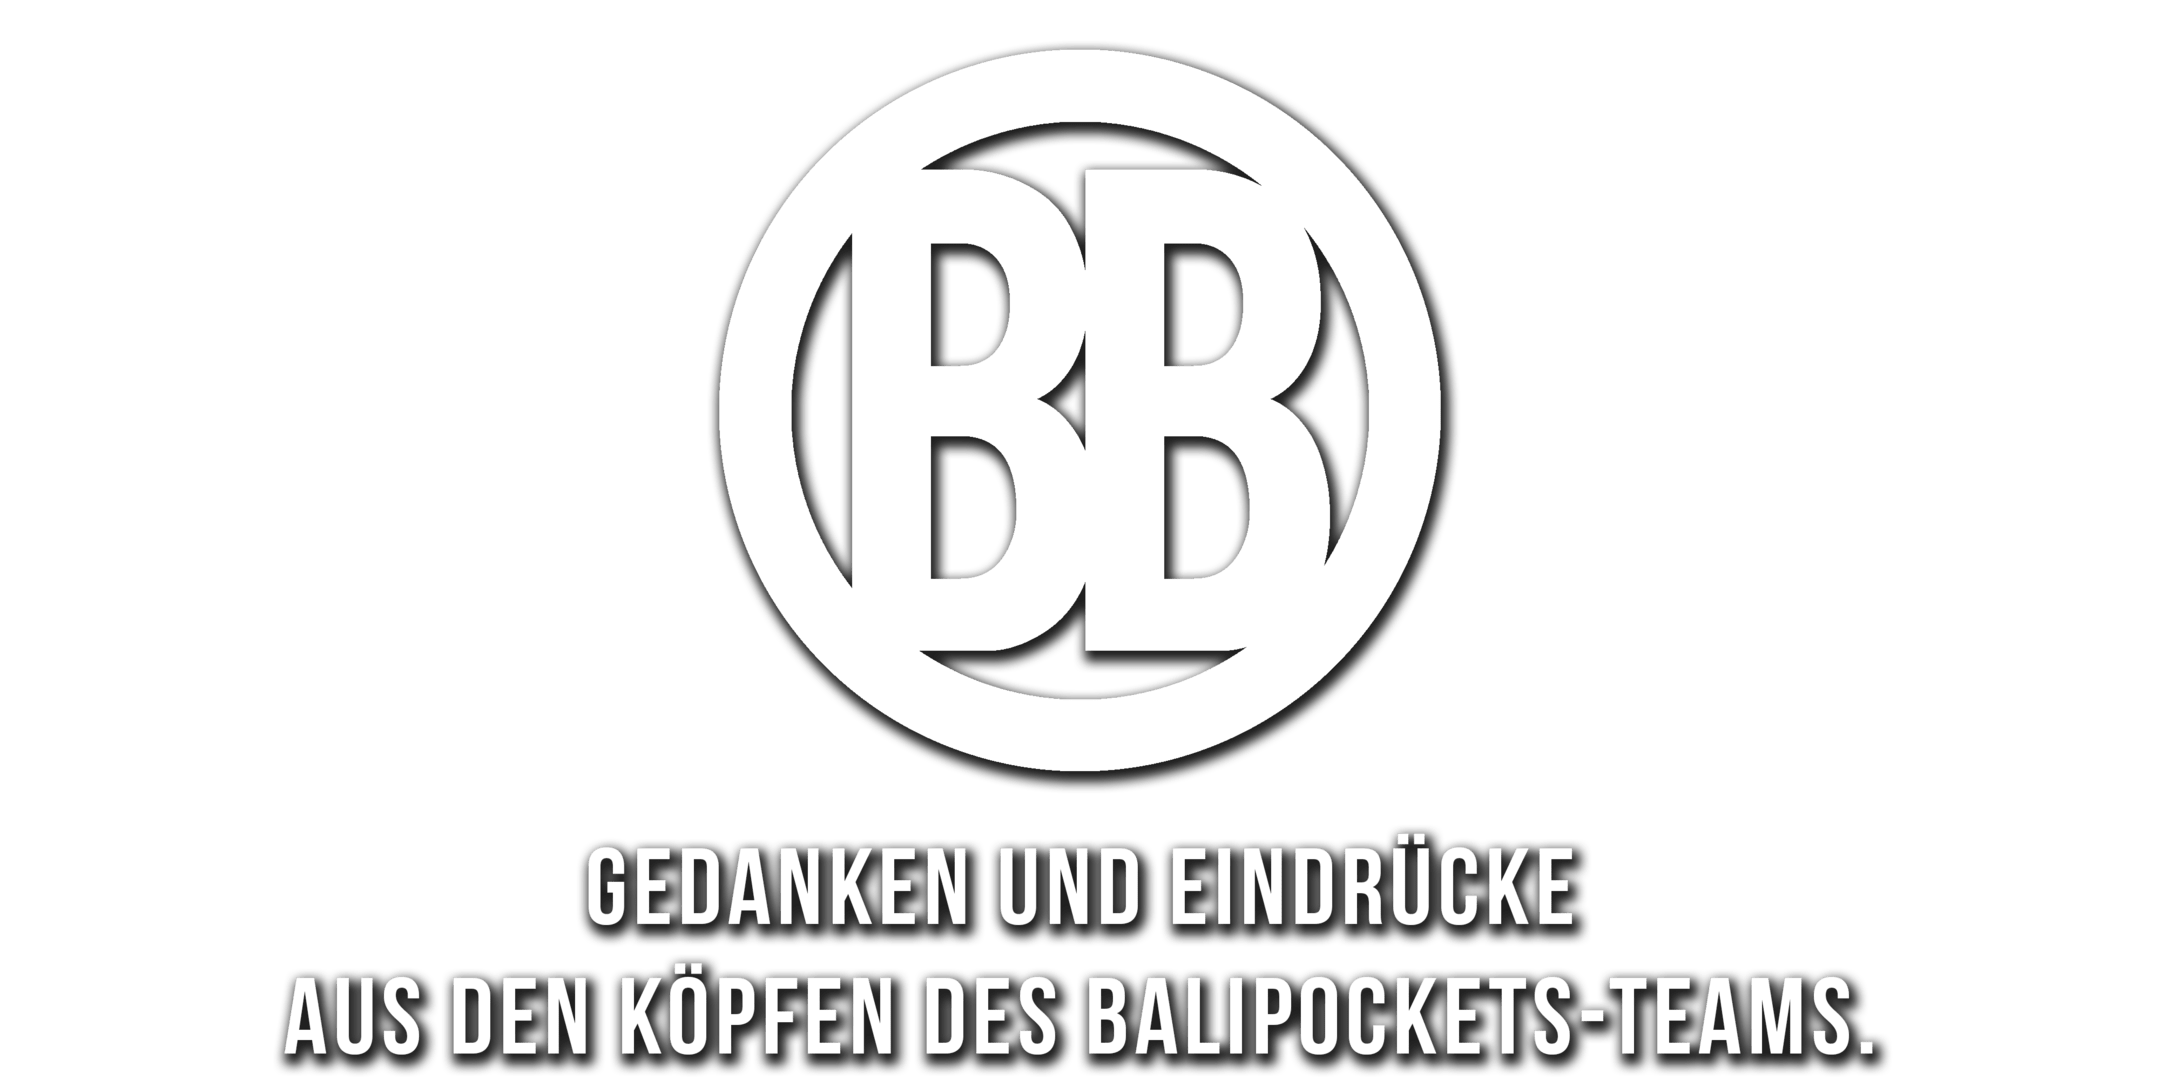 BB - Der Balipockets-Blog.